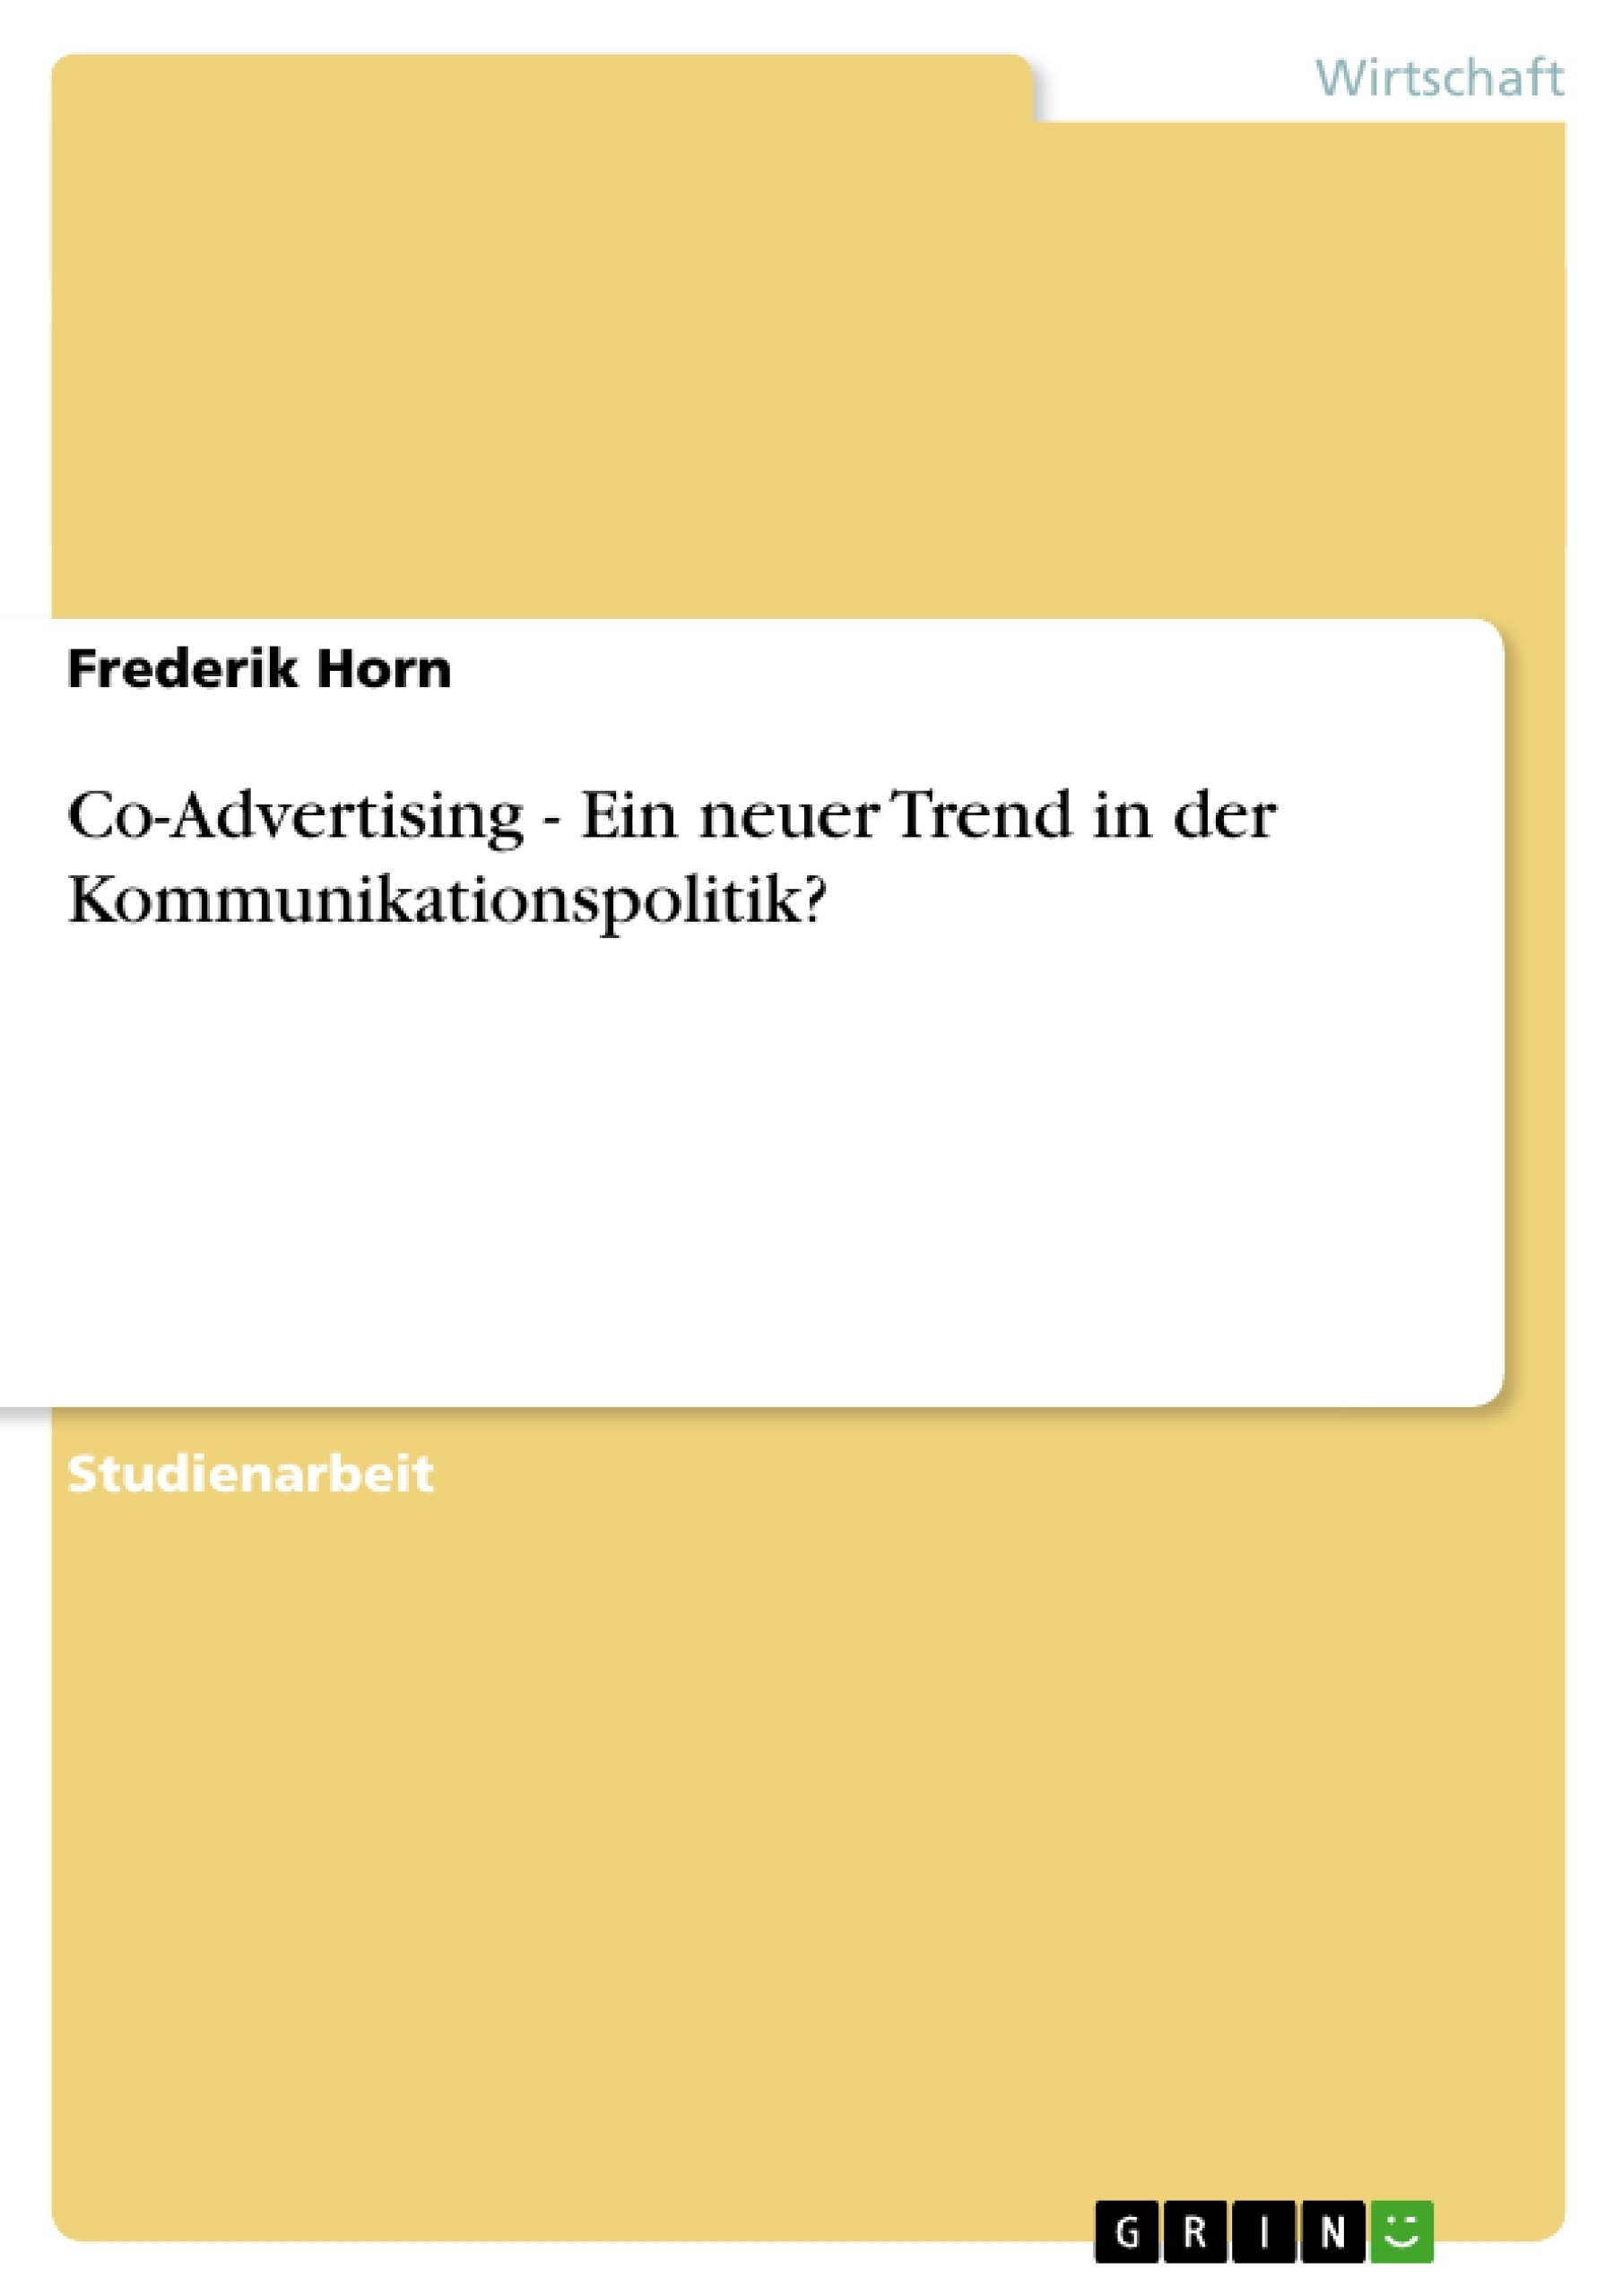 Titel: Co-Advertising - Ein neuer Trend in der Kommunikationspolitik?